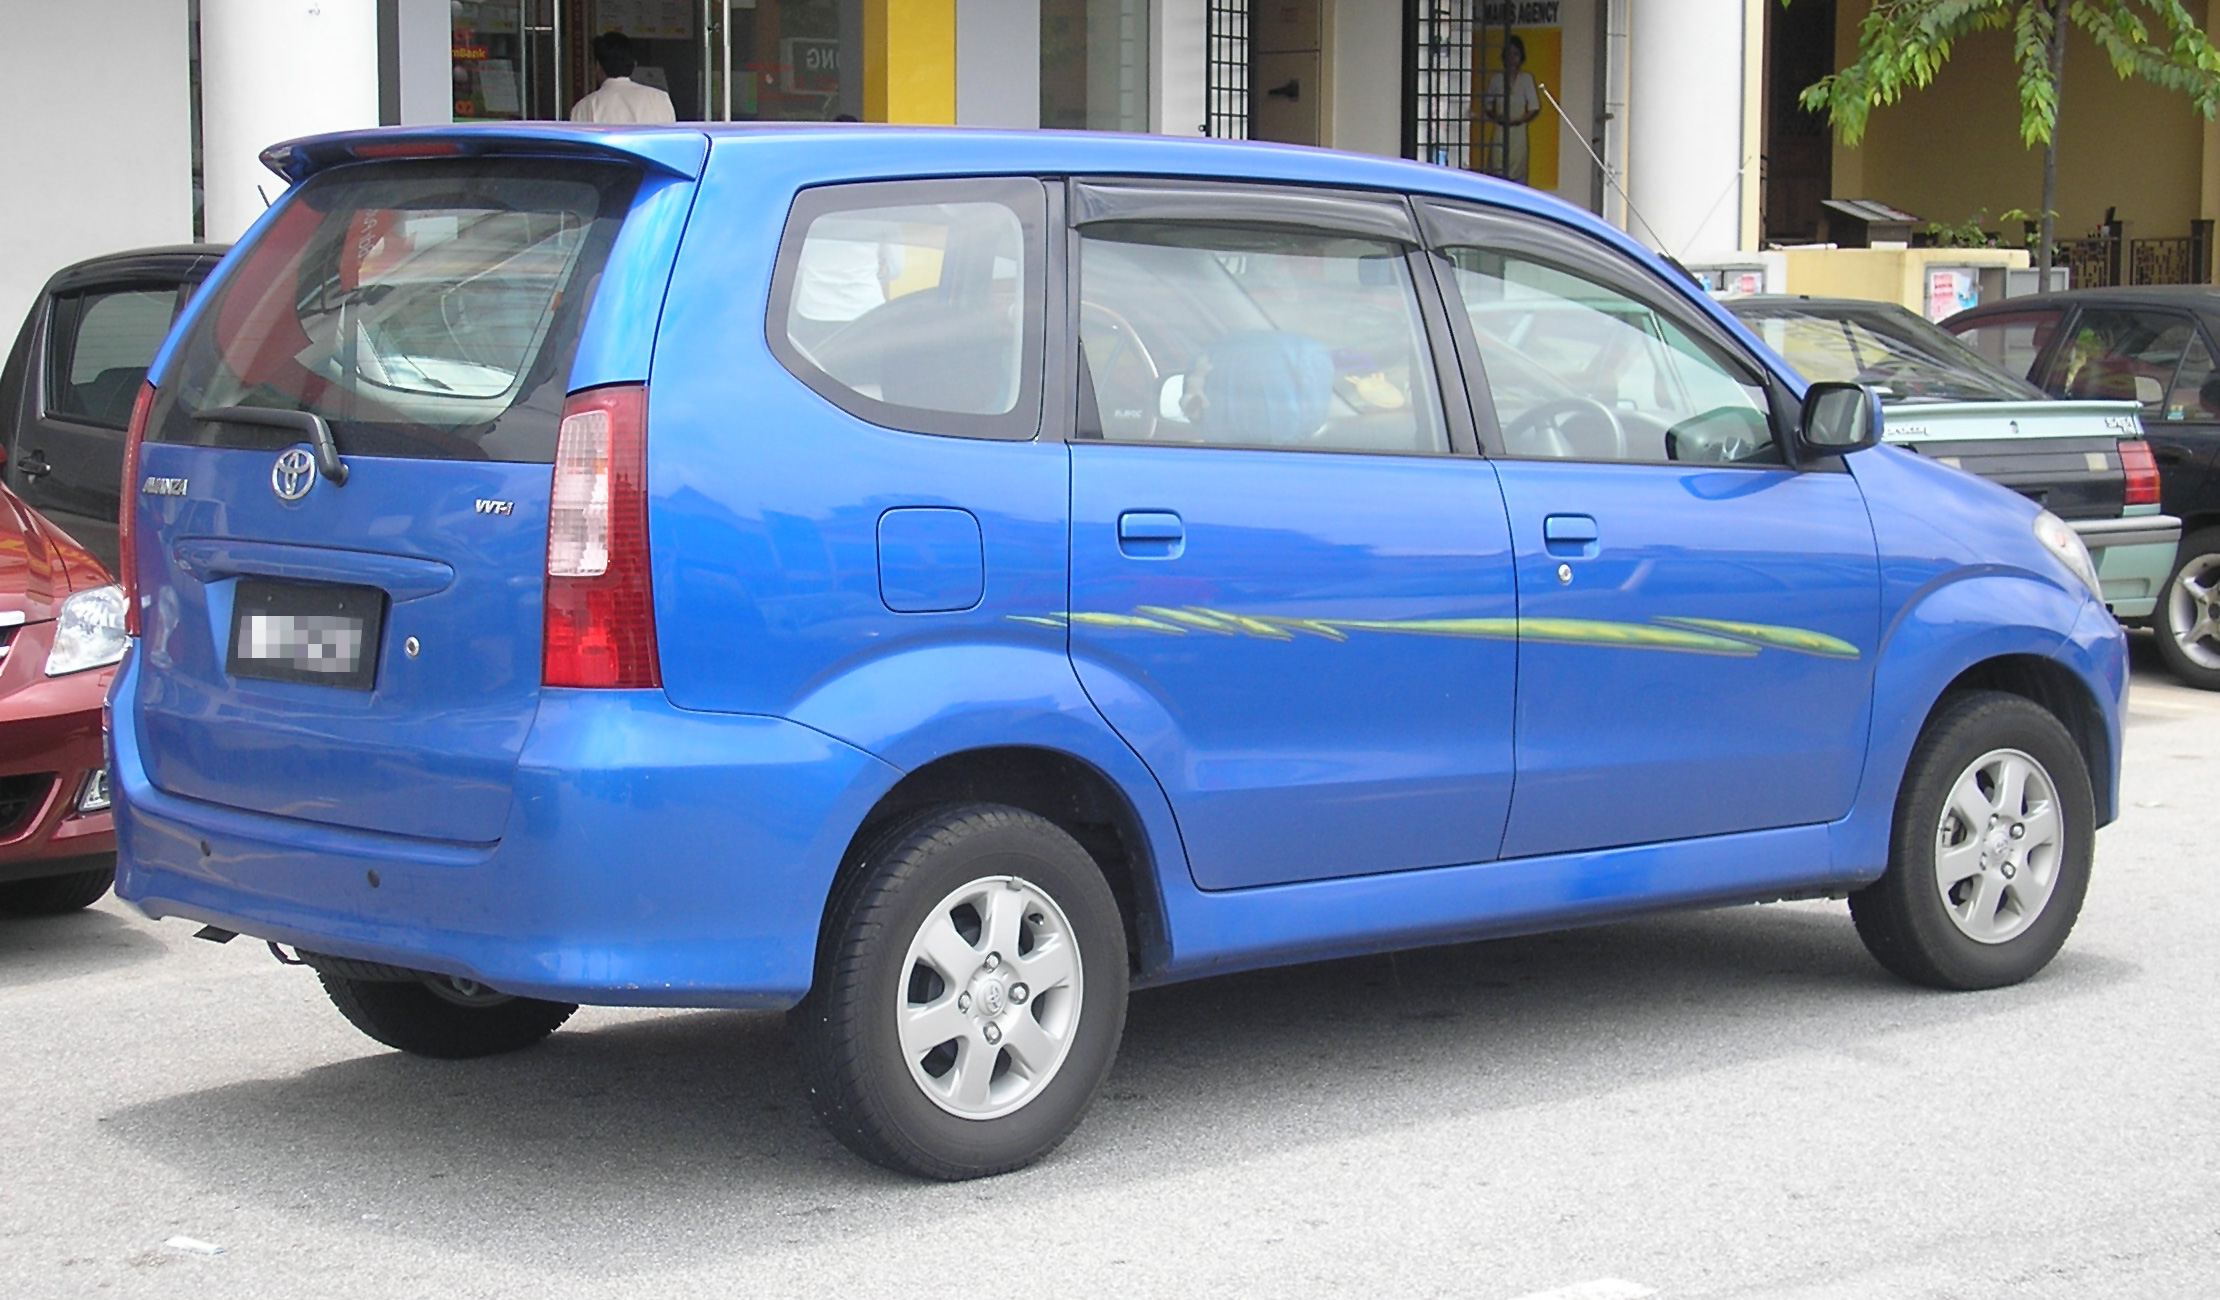 Audi And Ford Cars Gallery: Toyota Avanza